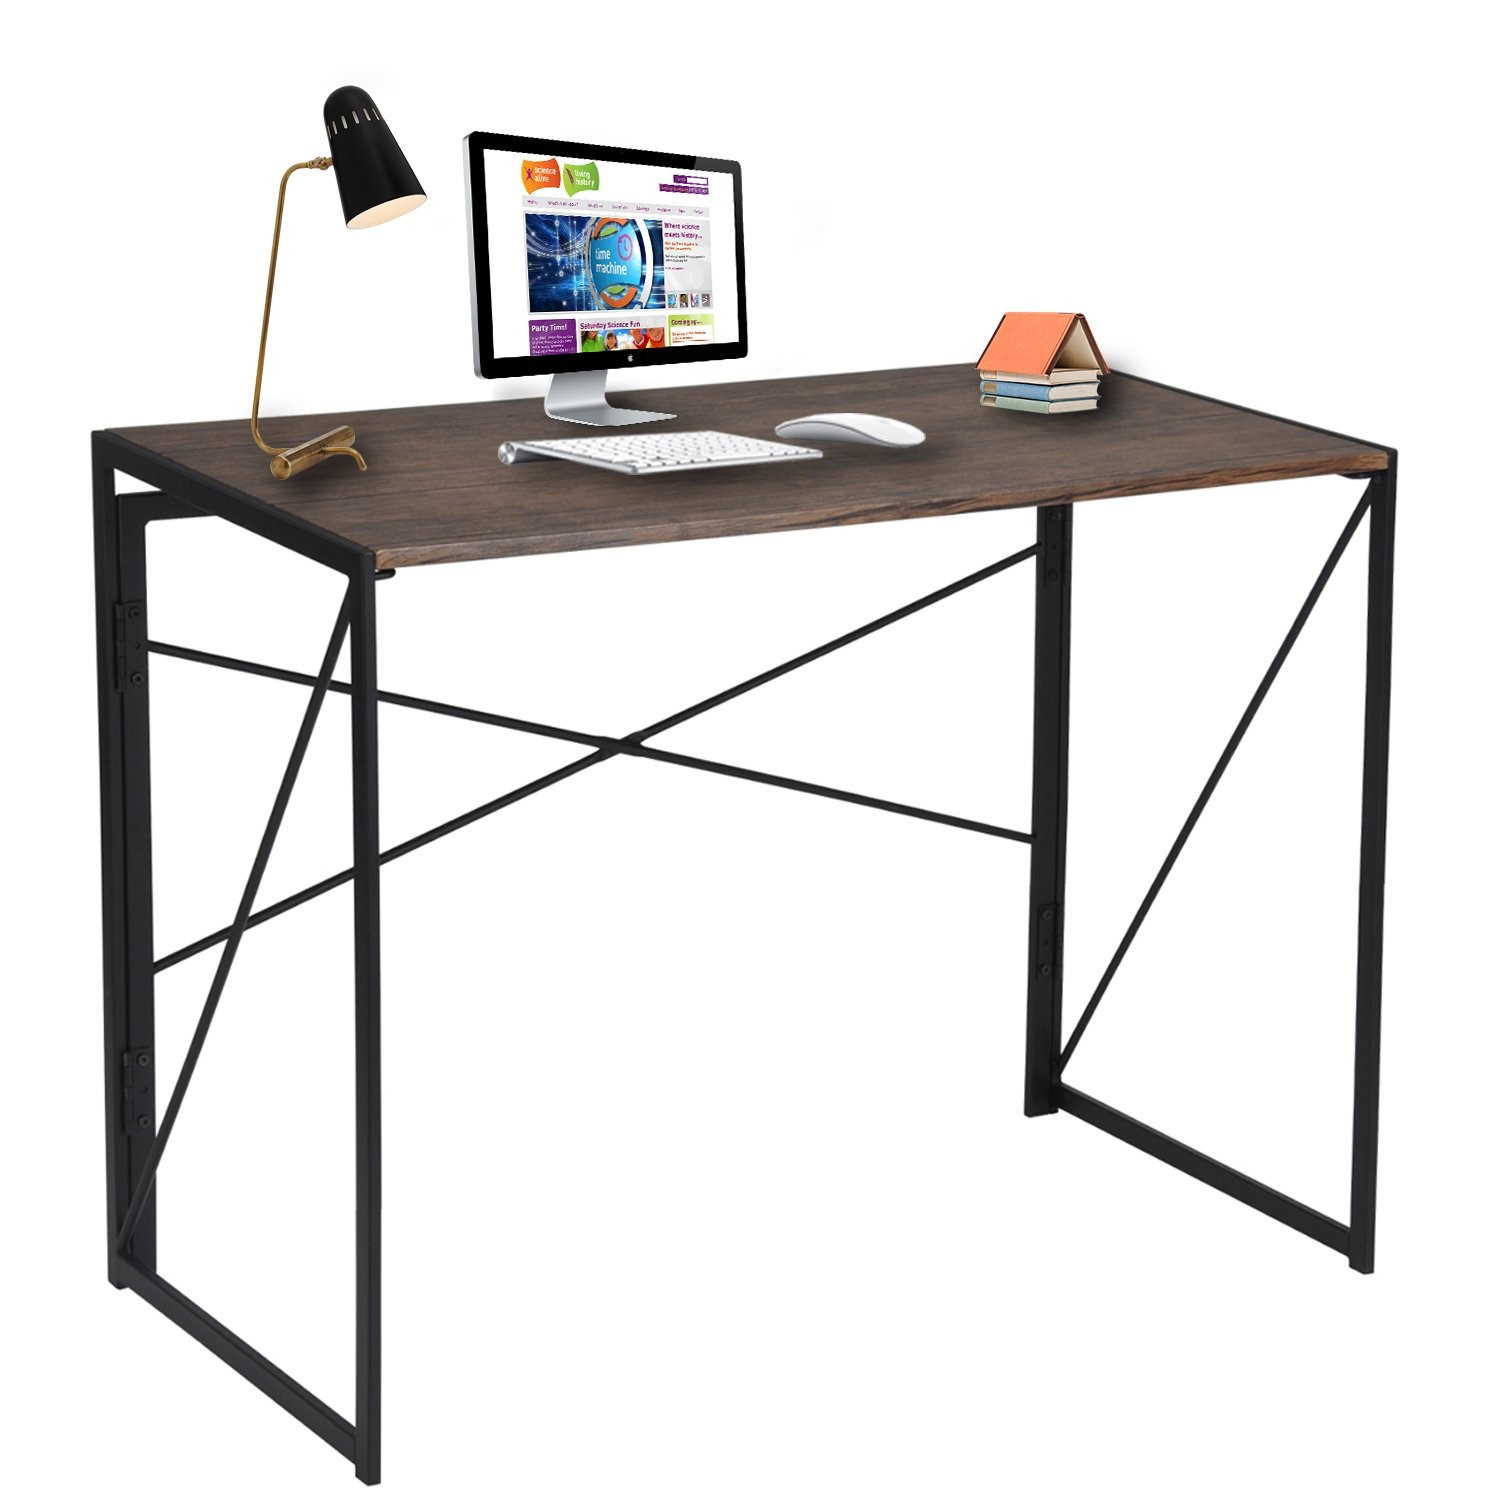 Coavas Industrial Writing Desk